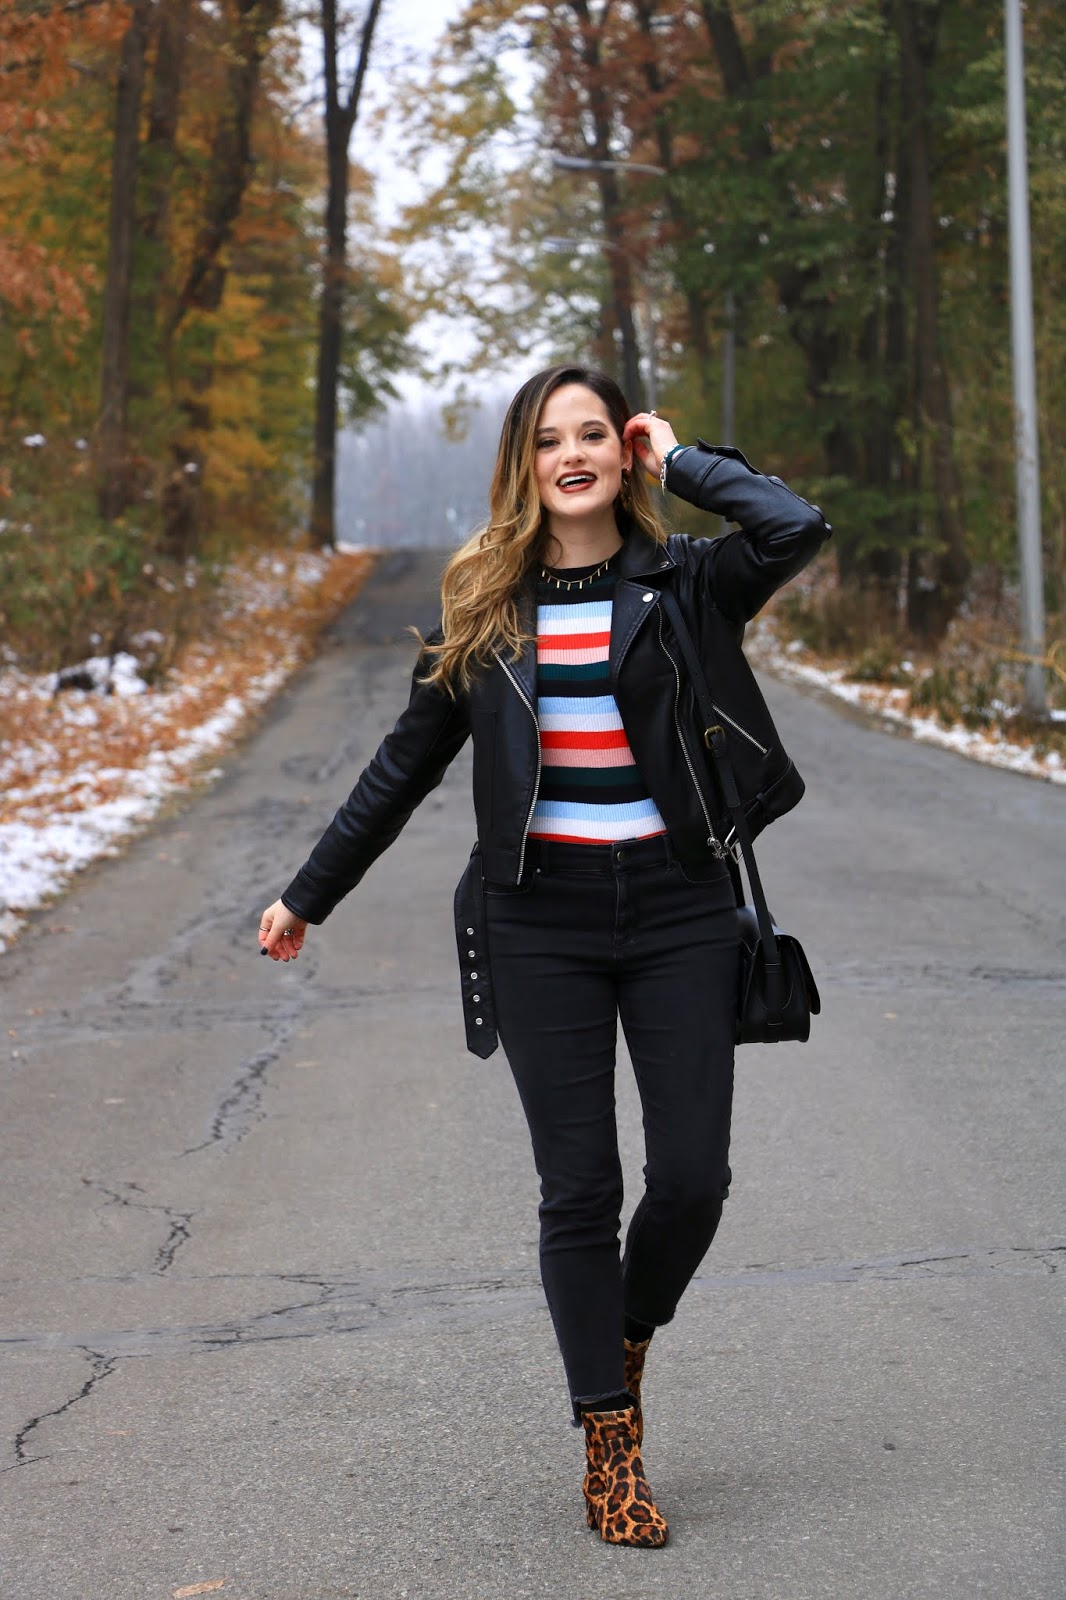 Nyc fashion blogger Kathleen Harper wearing a winter outfit at Notre Dame University.